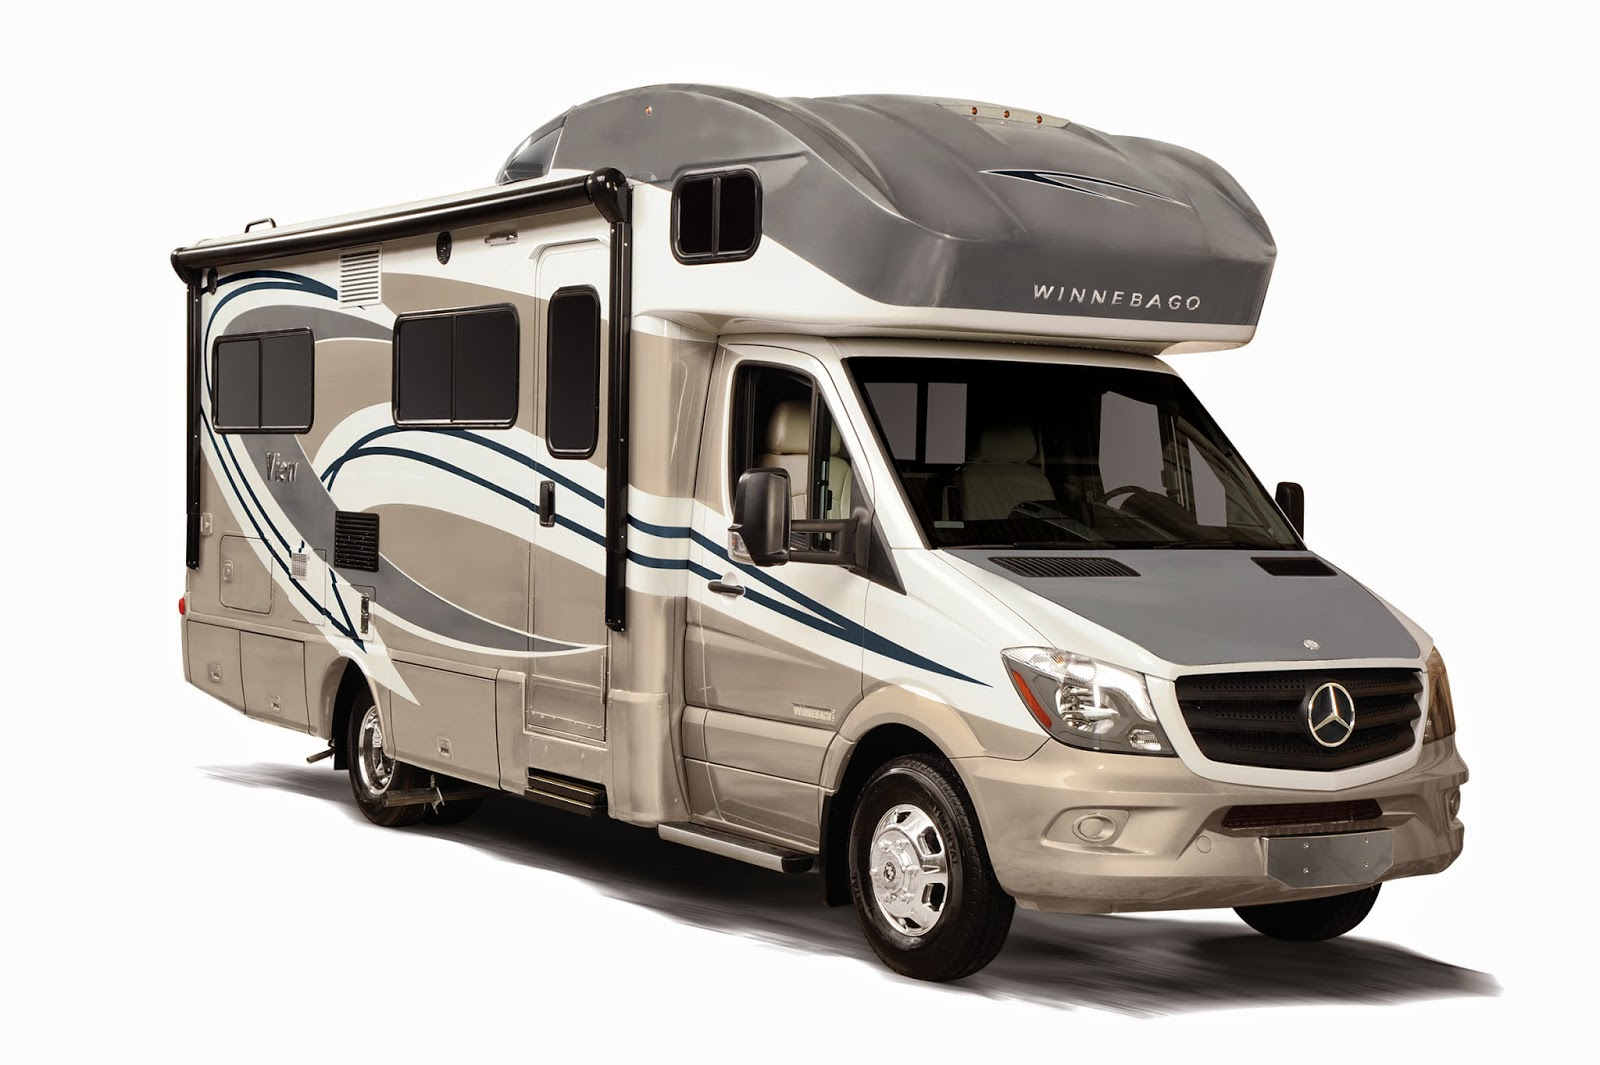 Excellent The Insider Fisher William C Bought 2,000 Shares Worth $51,880 Winnebago Industries, Inc Is A Manufacturer Of Recreation Vehicles RVs Used Primarily In Leisure Travel And Outdoor Recreation Activities The Company Has Market Cap